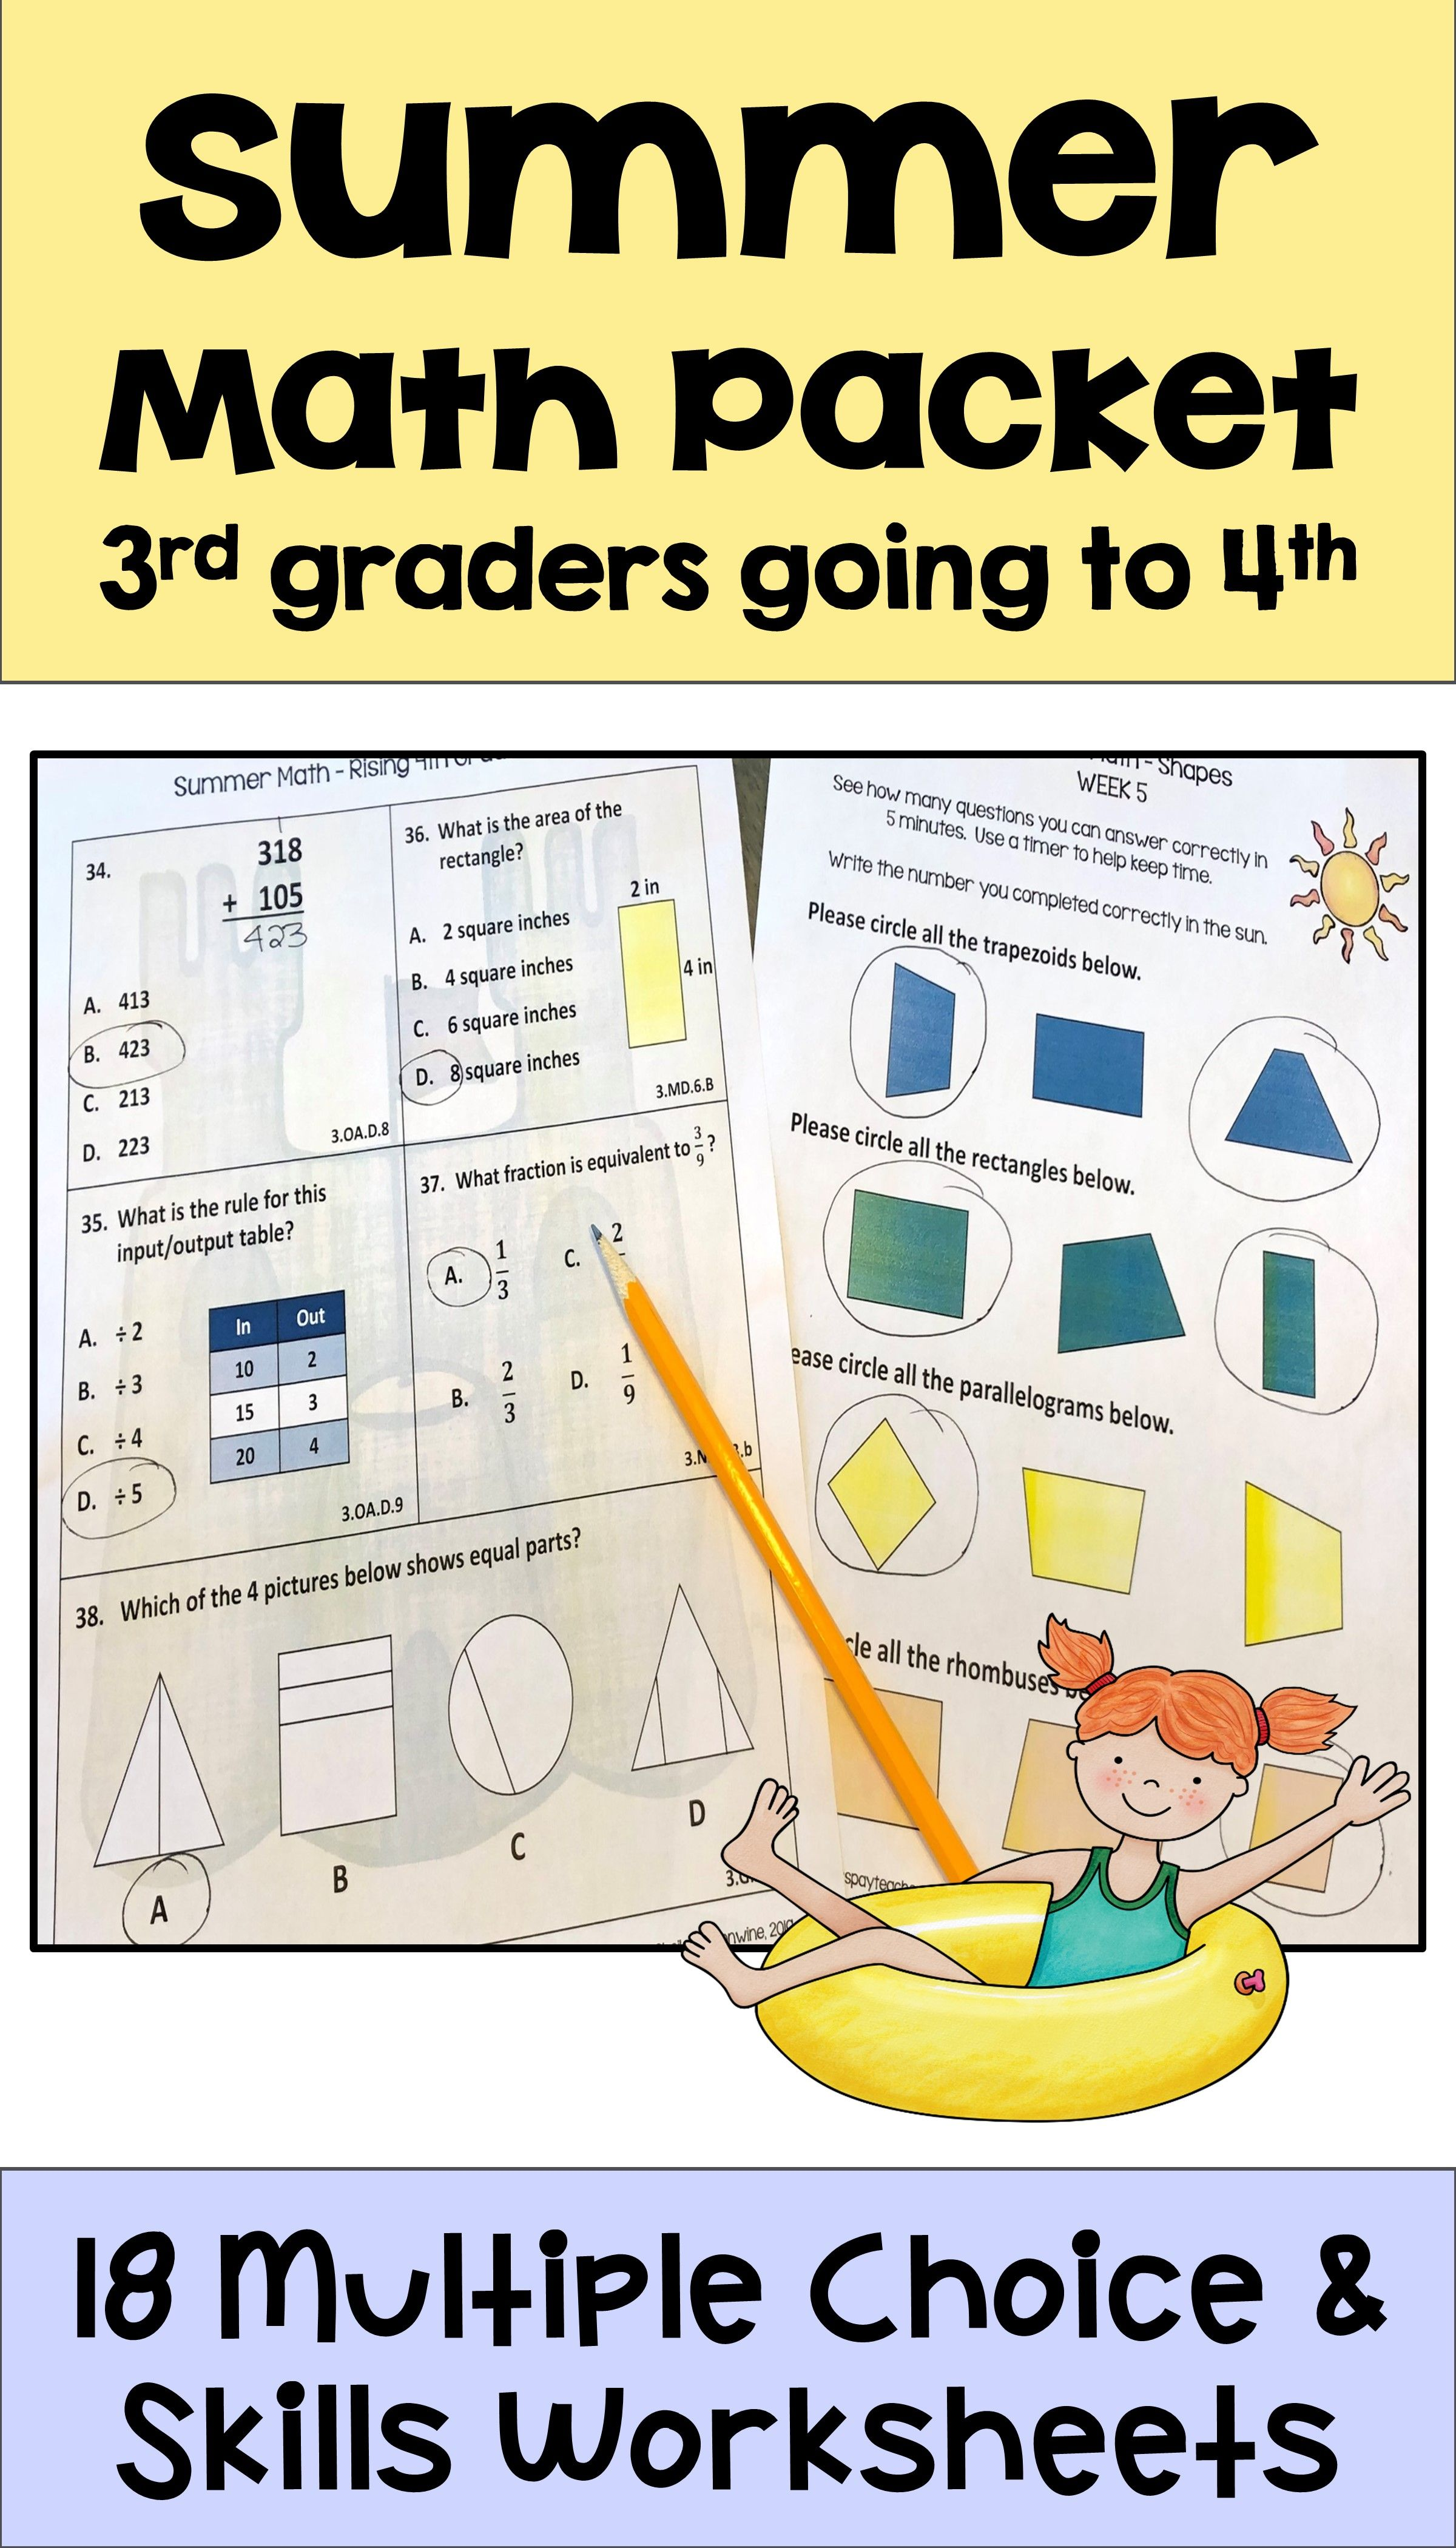 hight resolution of Summer Math Packet for Rising 4th Graders - Review of 3rd Grade Math   Math  packets